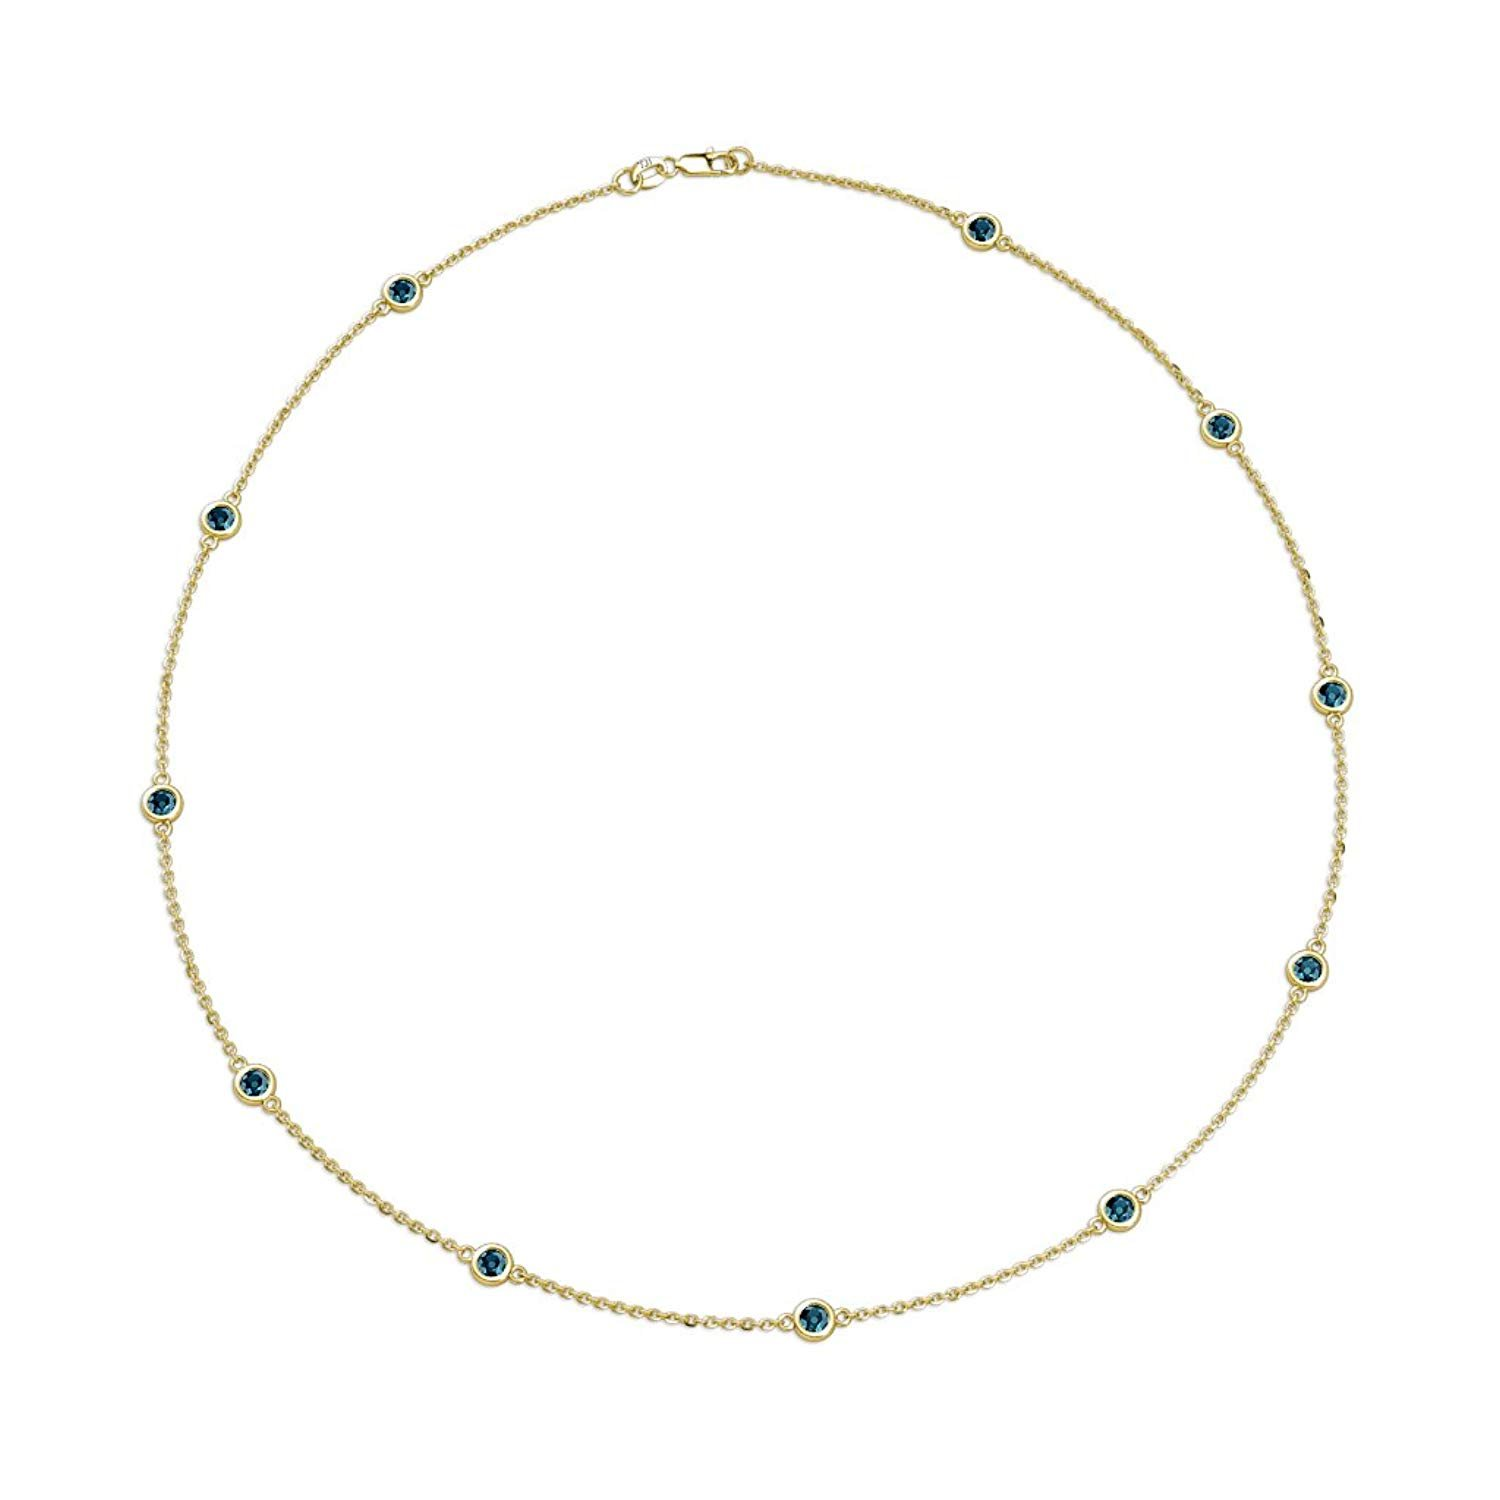 11 Station Blue Diamond on Cable Necklace 0.75 Carat tw in 14K Yellow Gold.18 Inches in Length by TriJewels